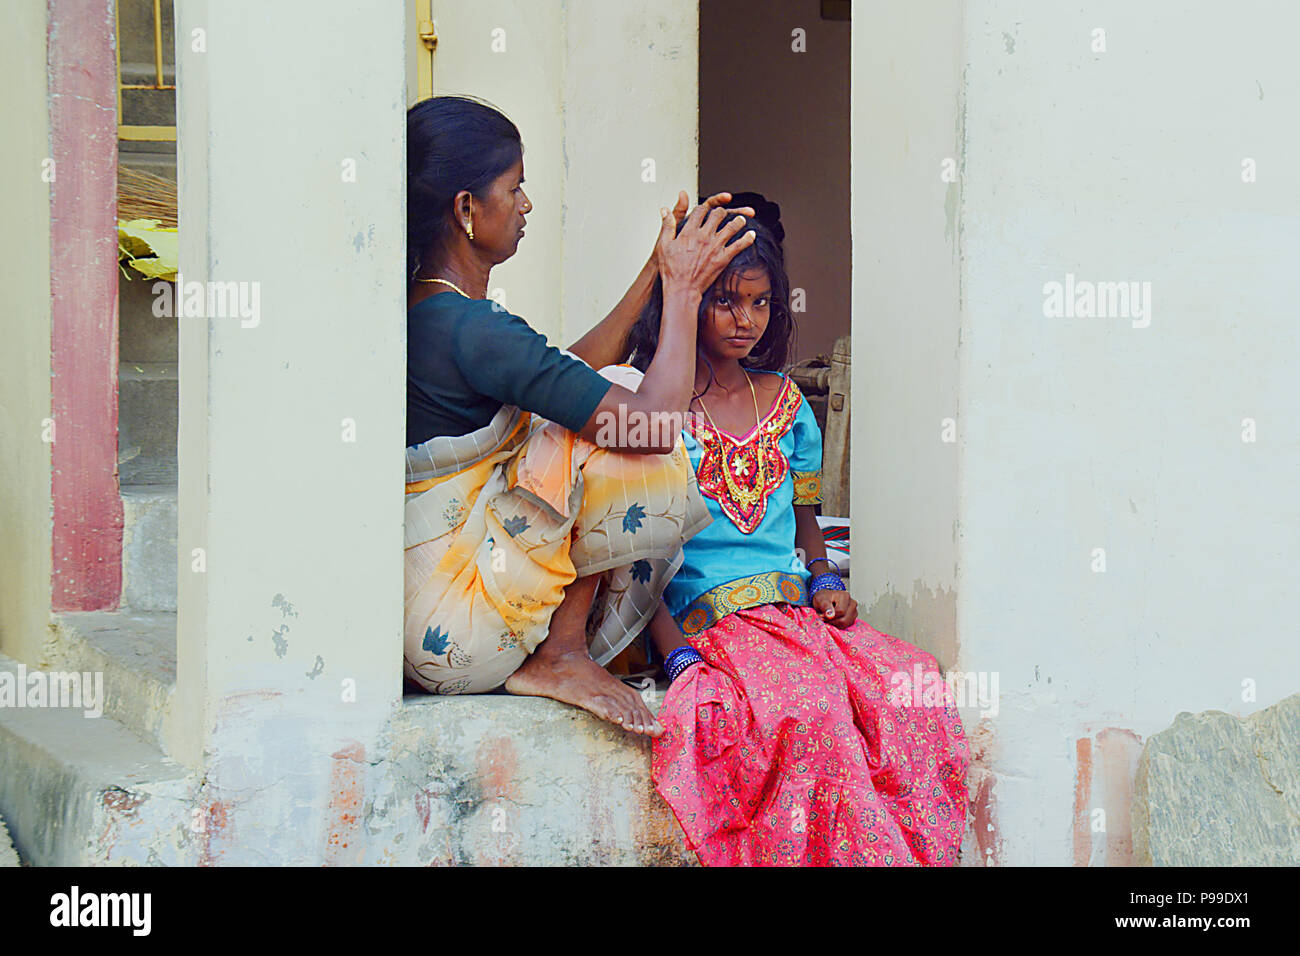 Mother checking for head lice at daughter, Mother combing daughter, care about hairstyle. Stock Photo